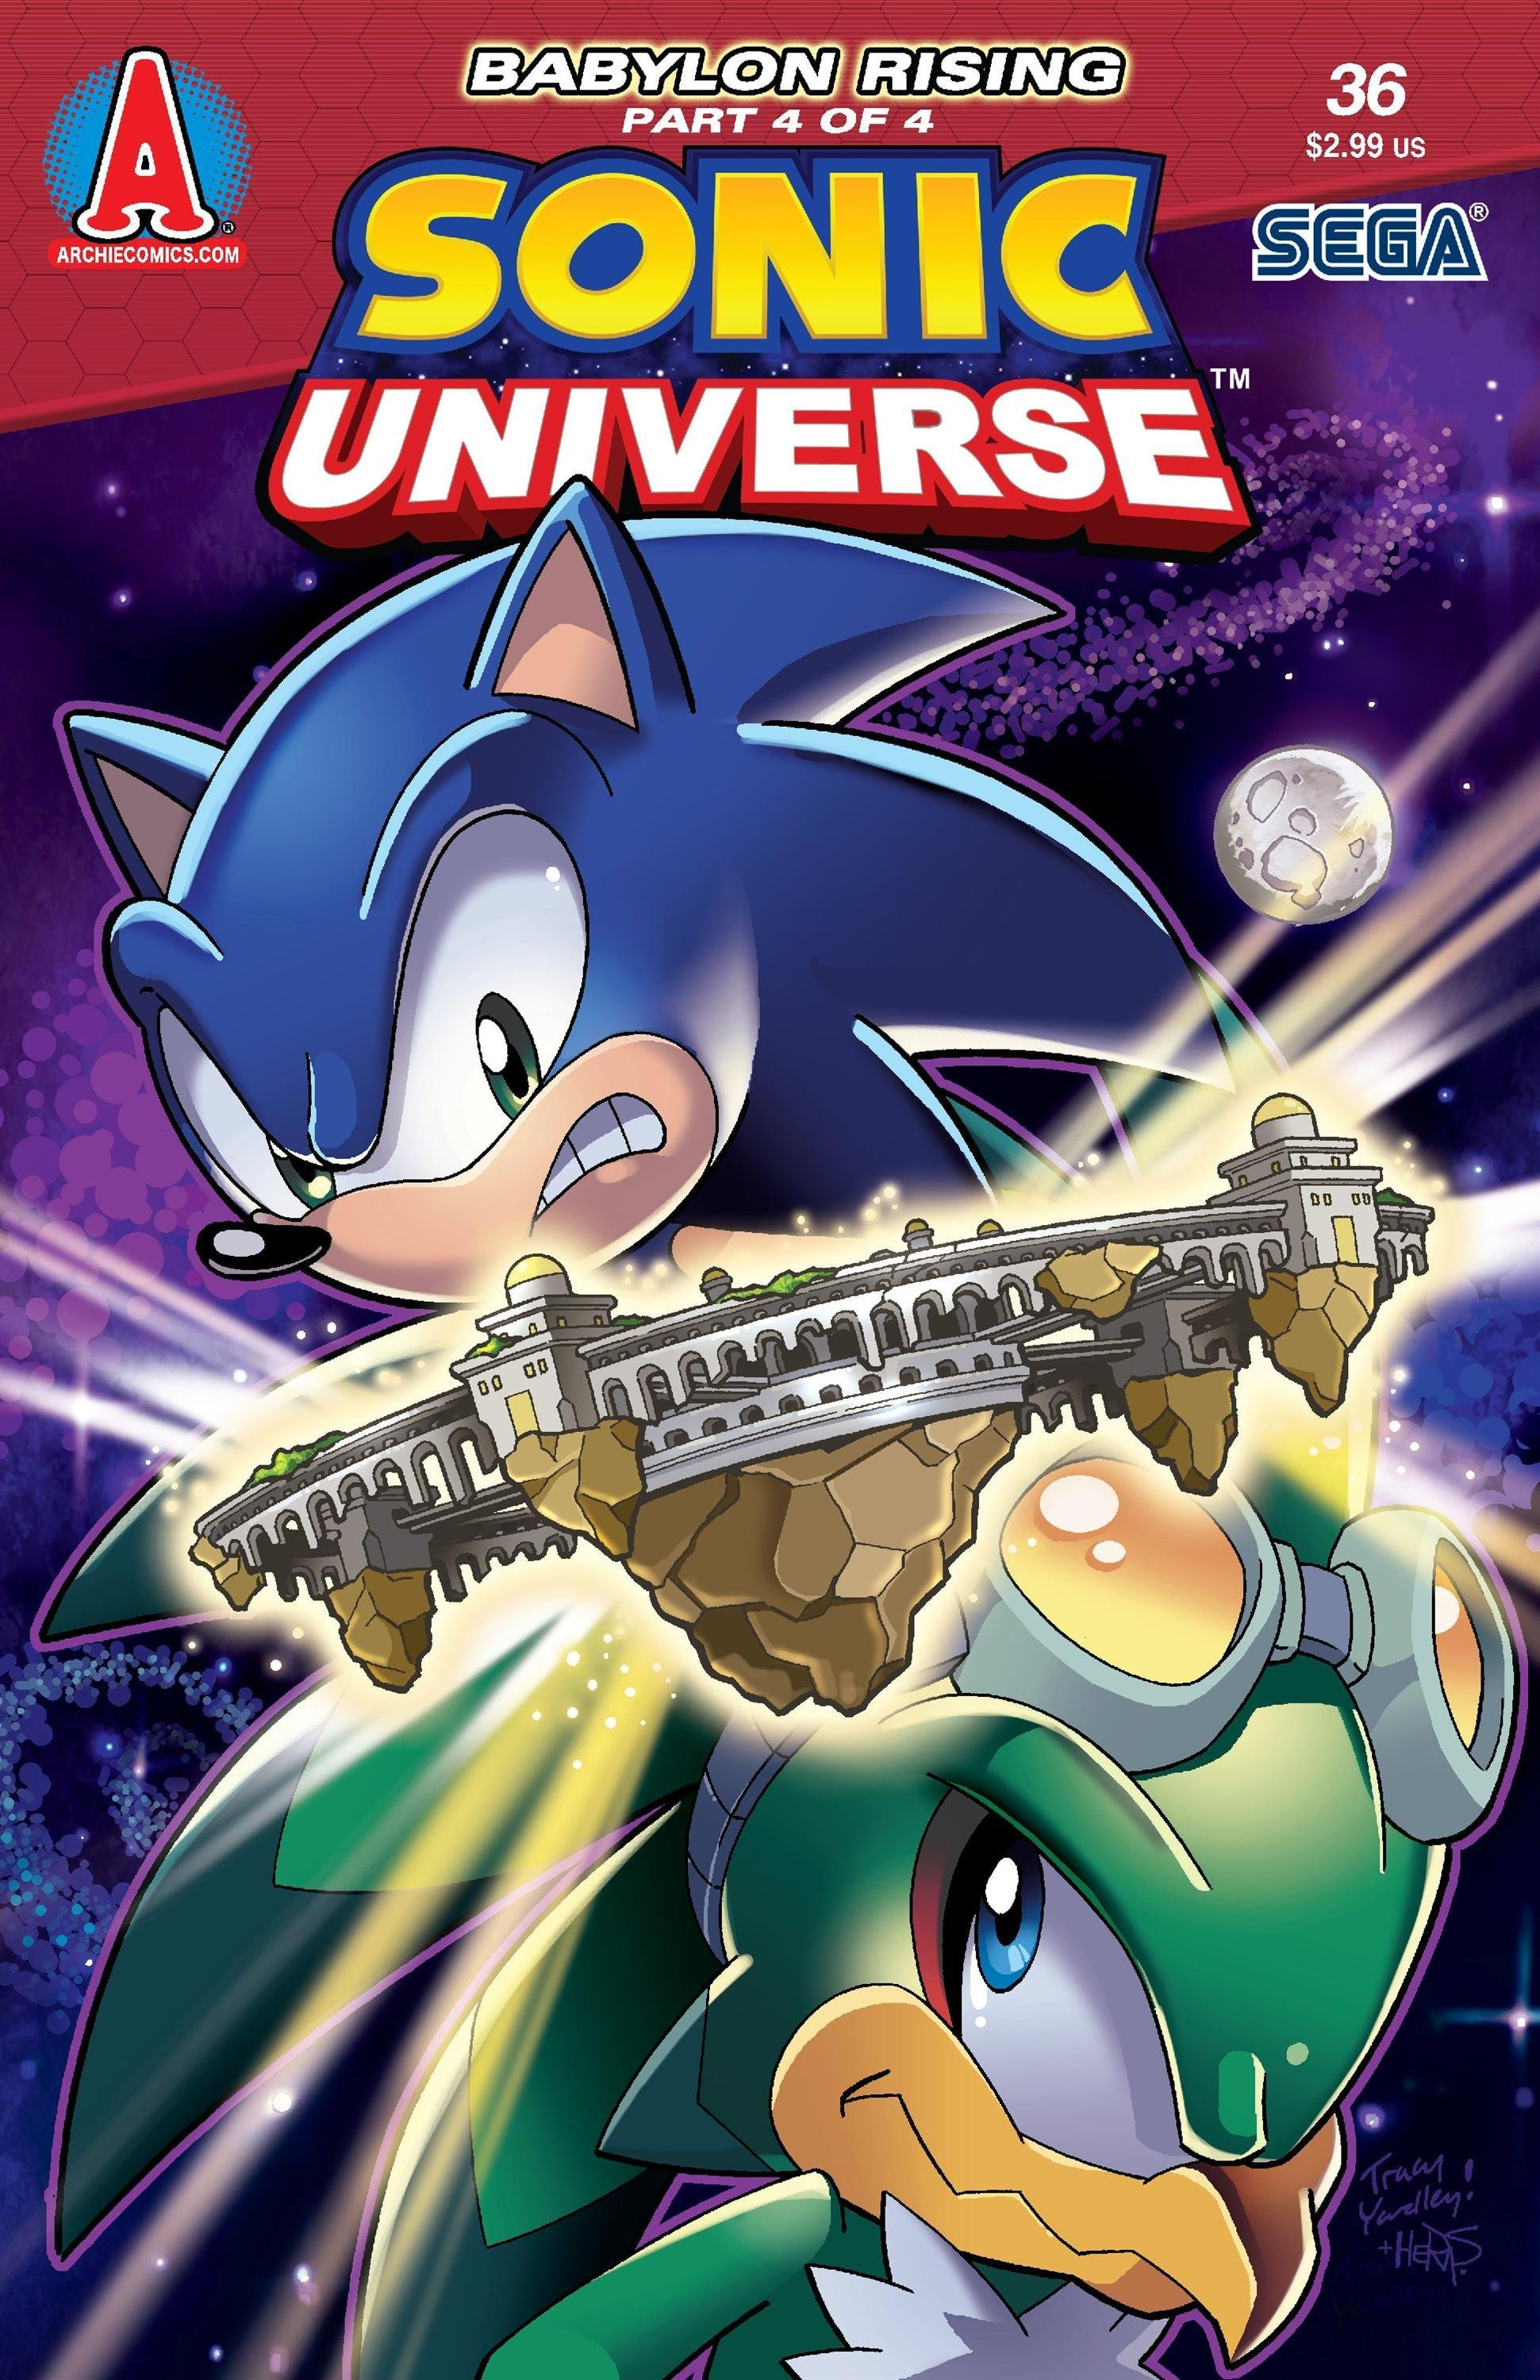 Sonic Universe 036 (March 2012)